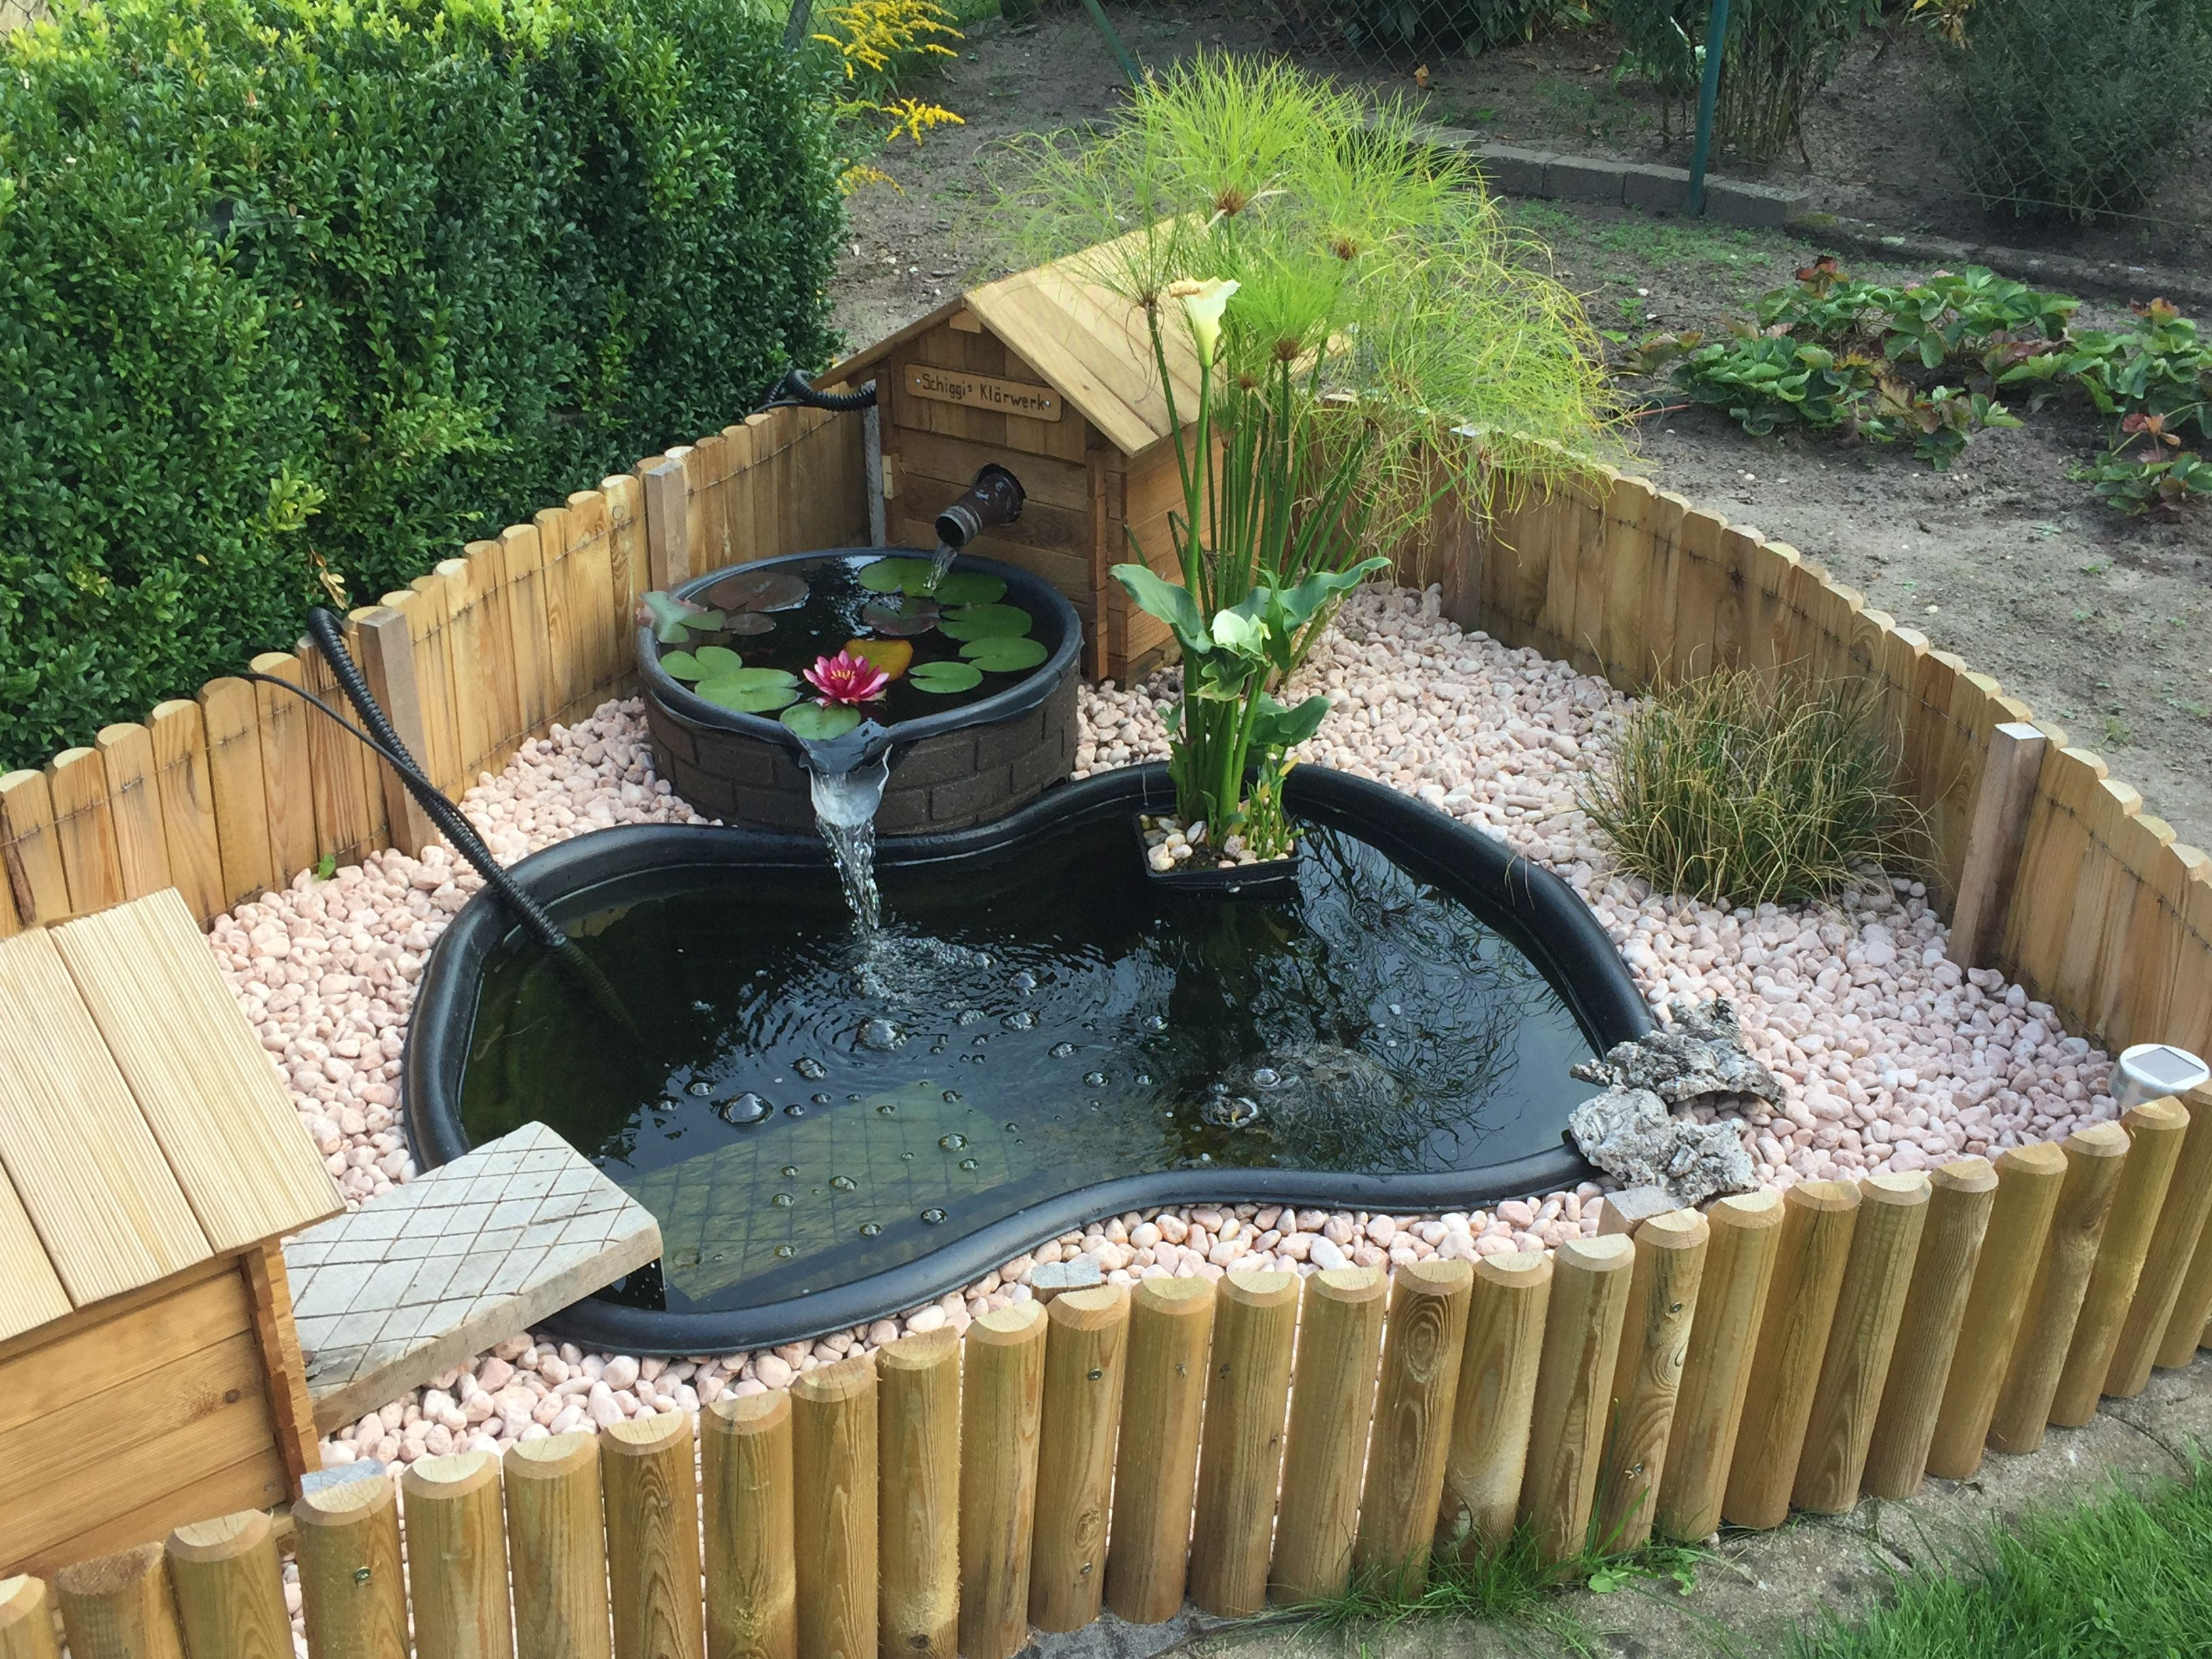 Pin by kay boston taylor on turtle ponds pinterest for Estanque para tortugas